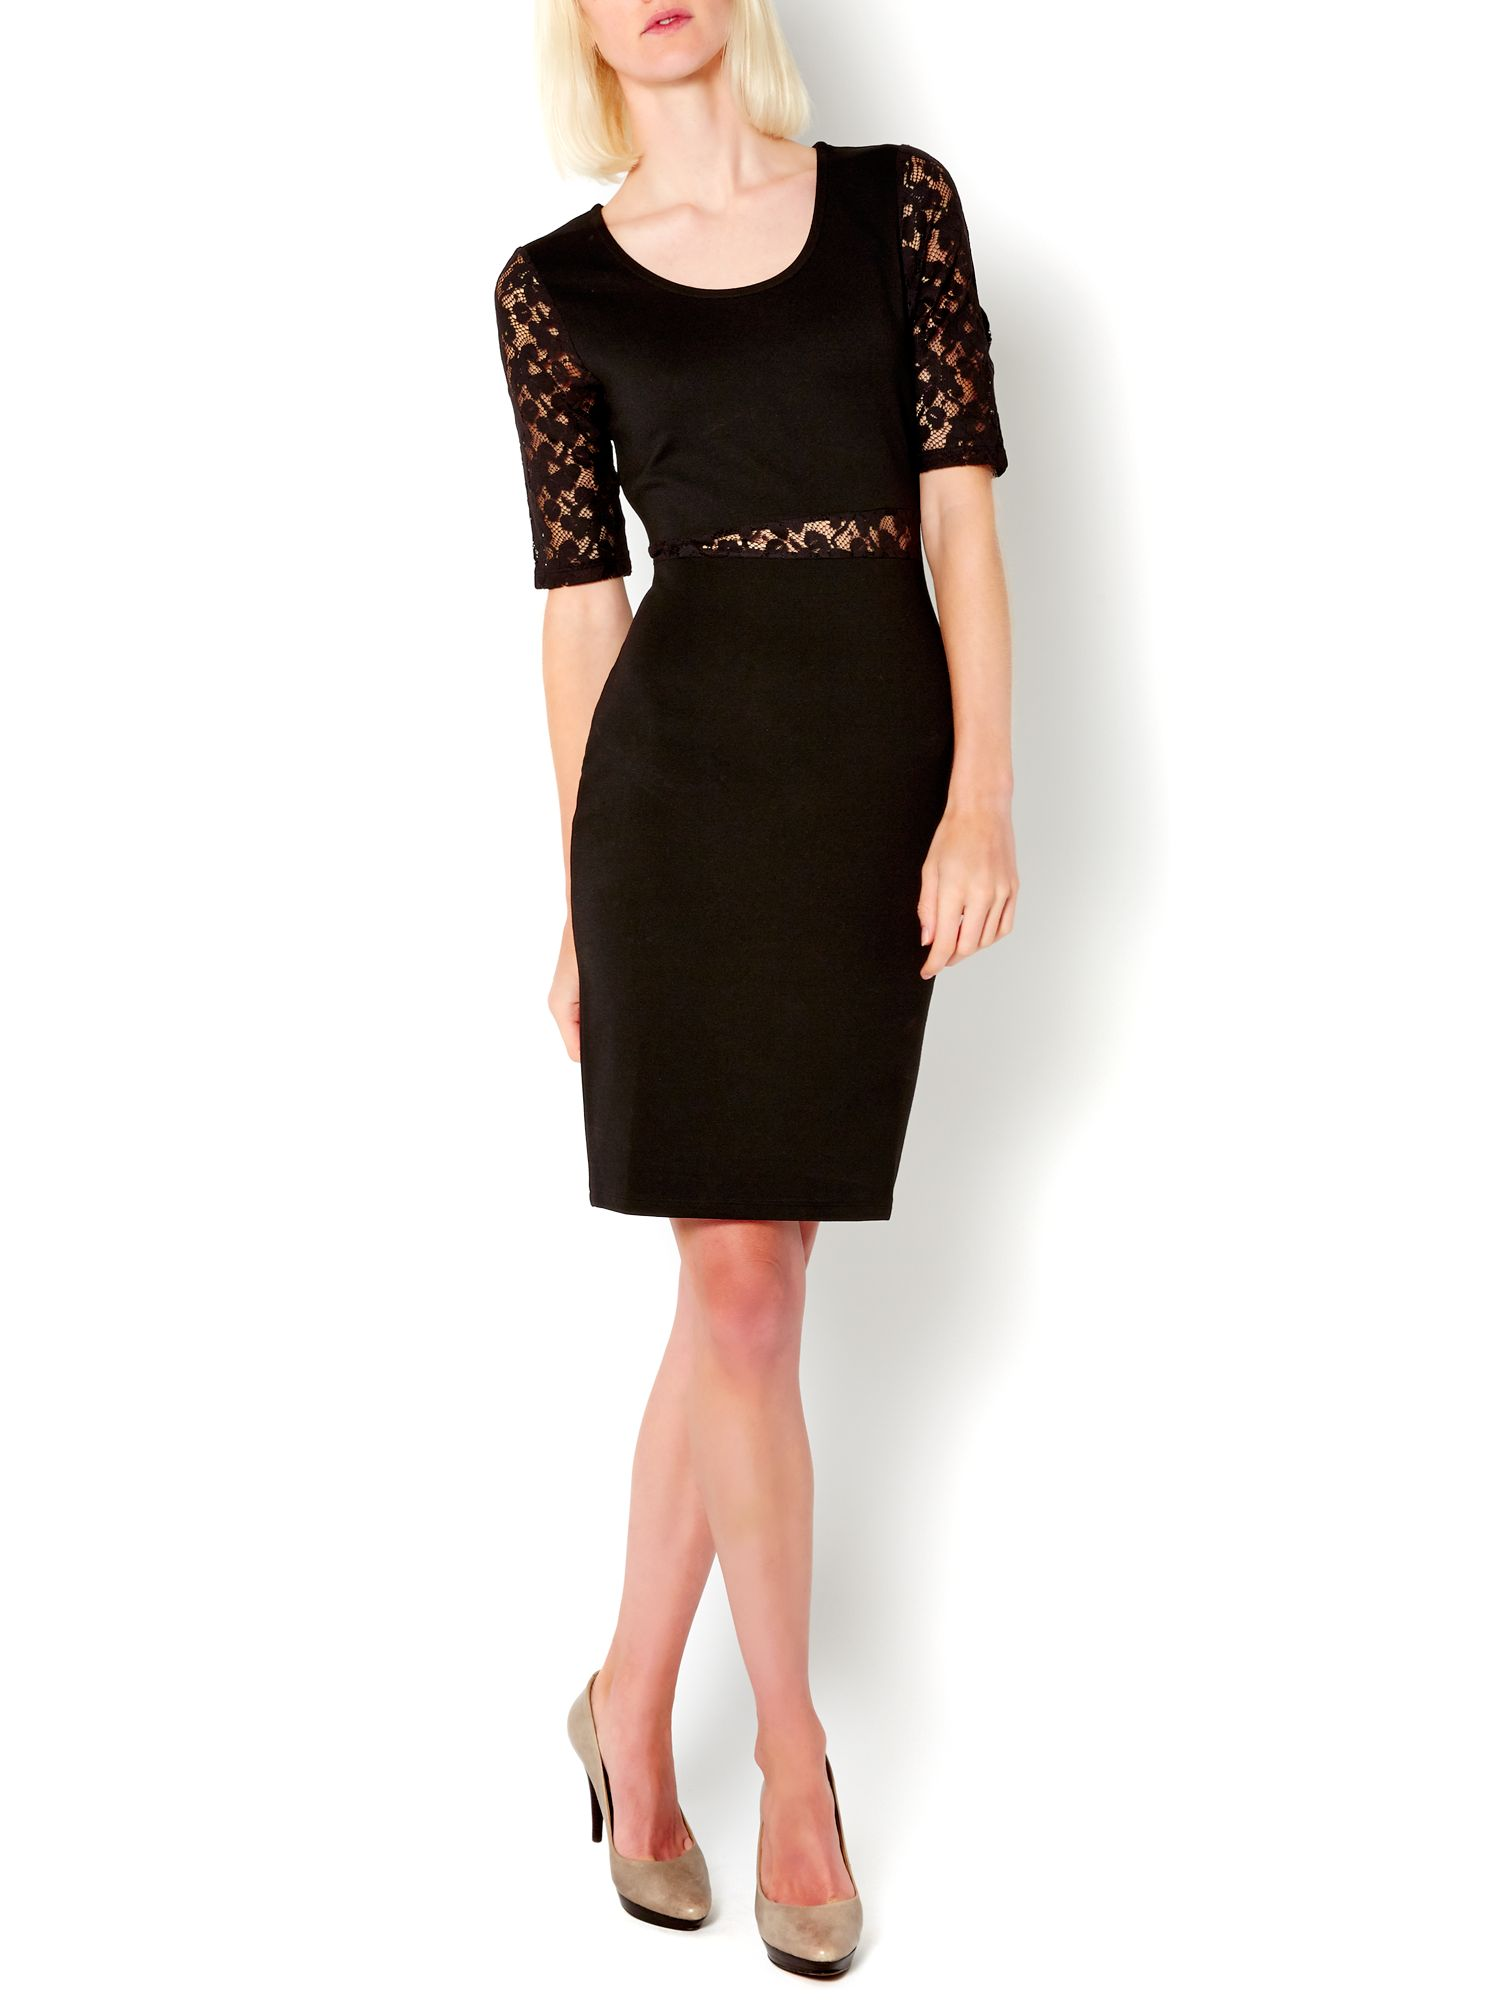 Lace panelled bodycon tube dress